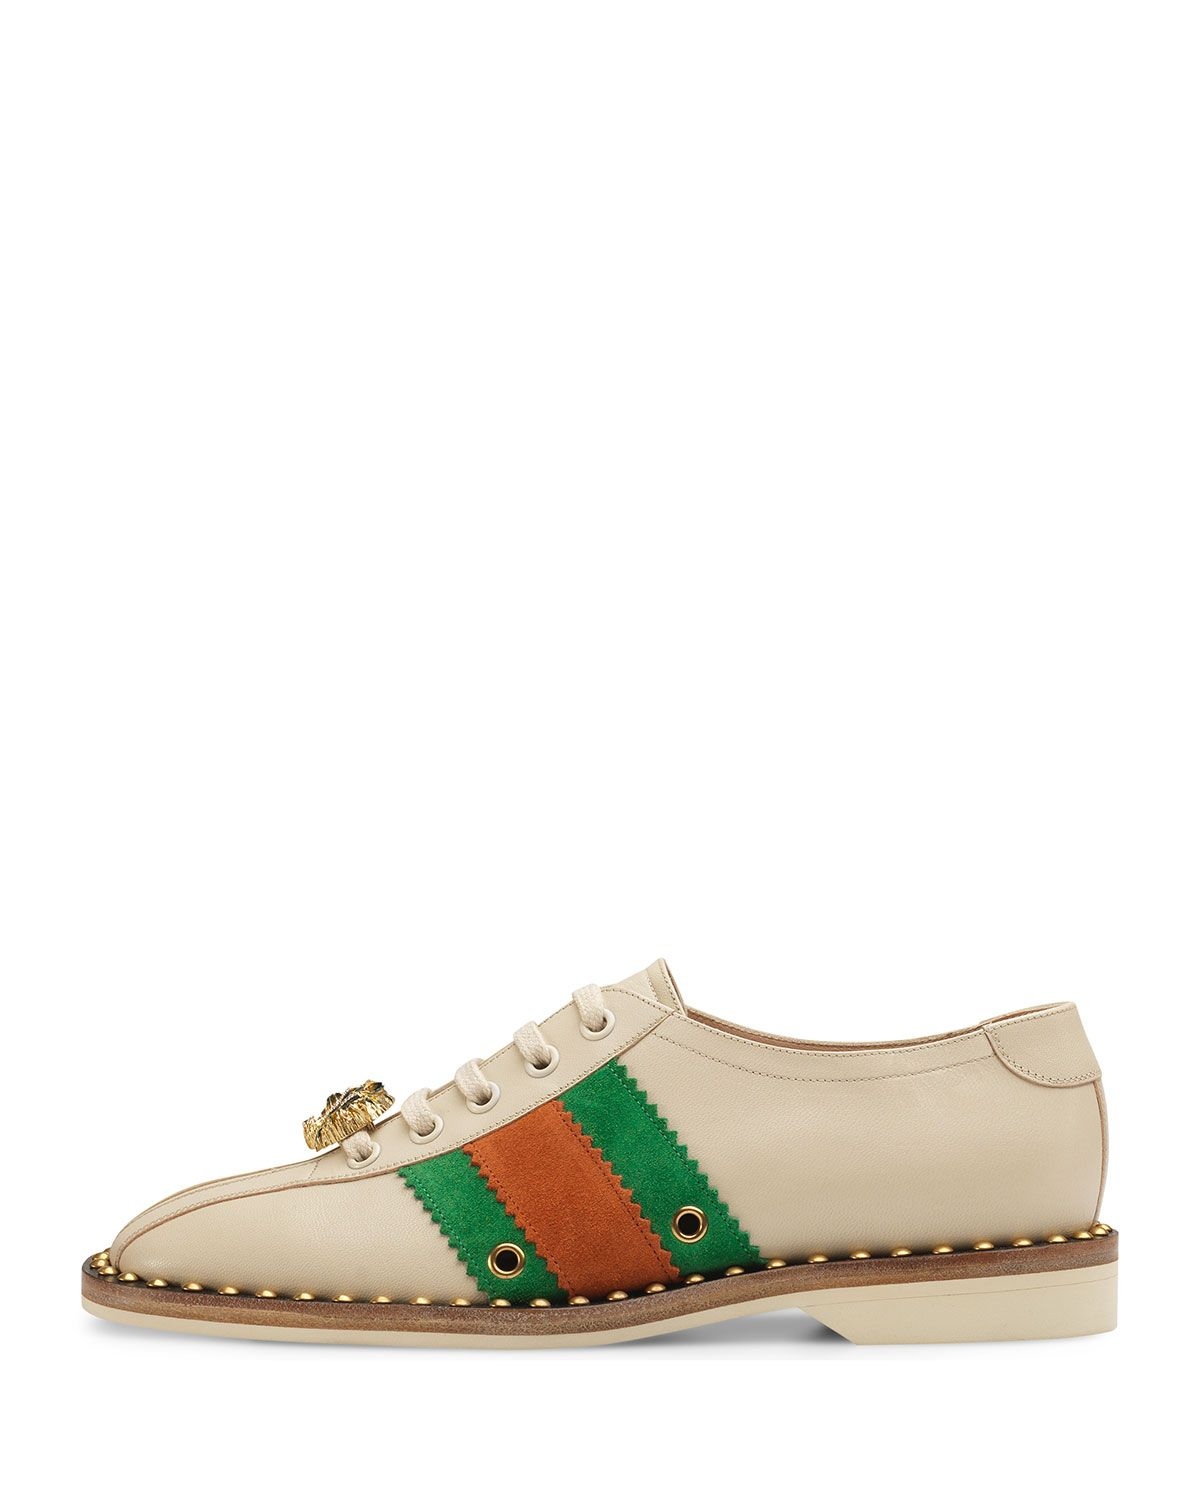 b0ab41d73e2ac Gucci Leather Lace-Up Bowling Shoe Sneakers in 2019